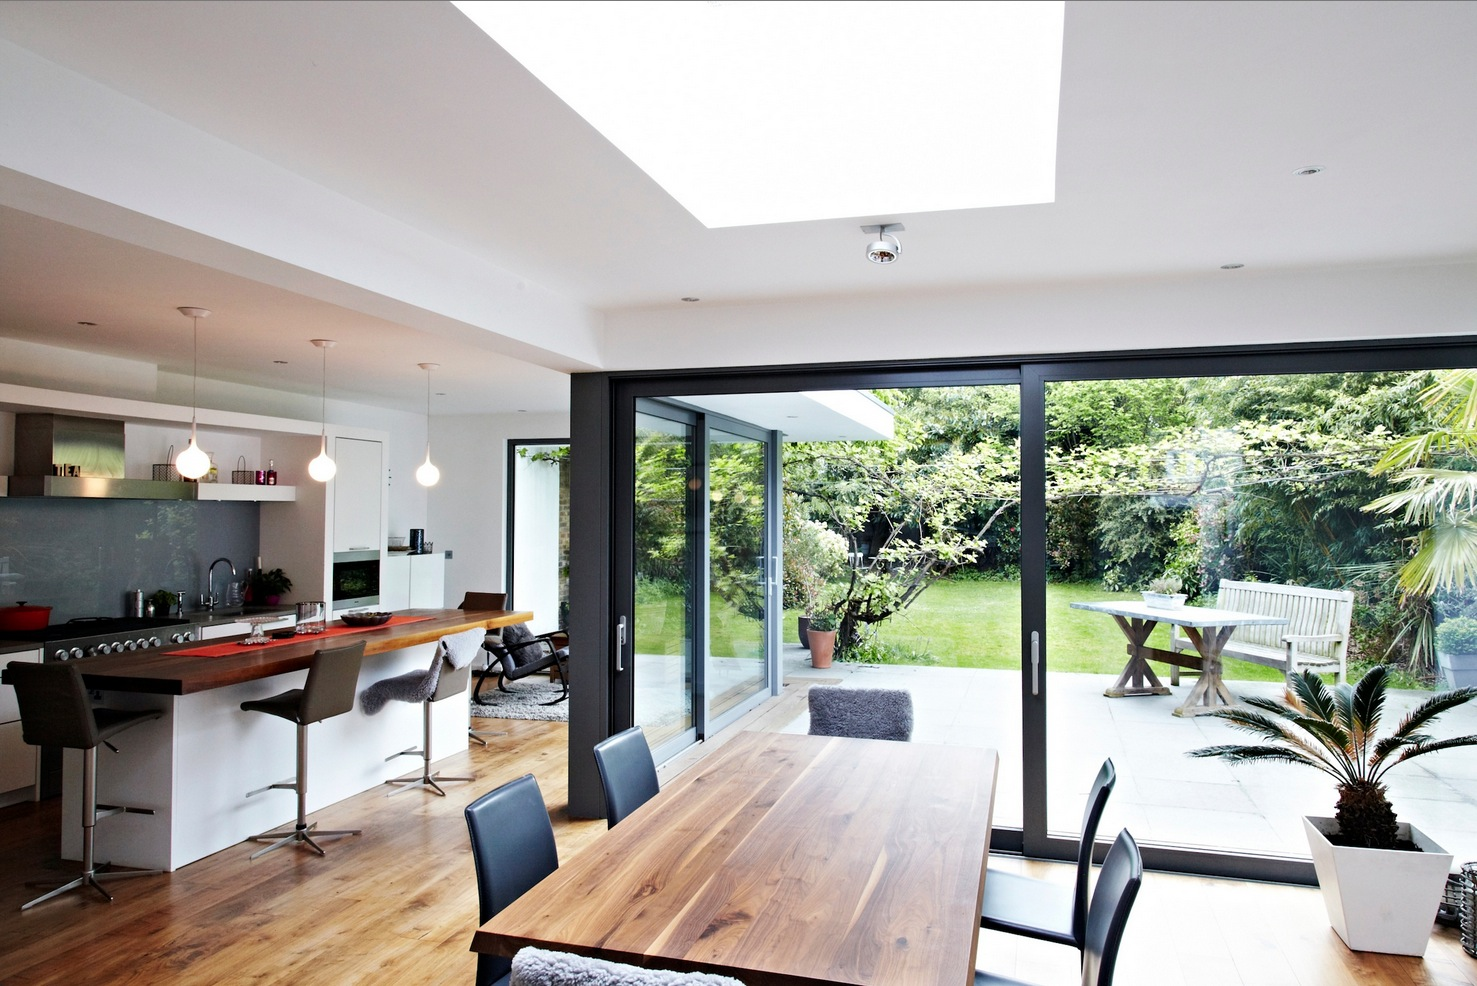 Open Glass Extension Patio